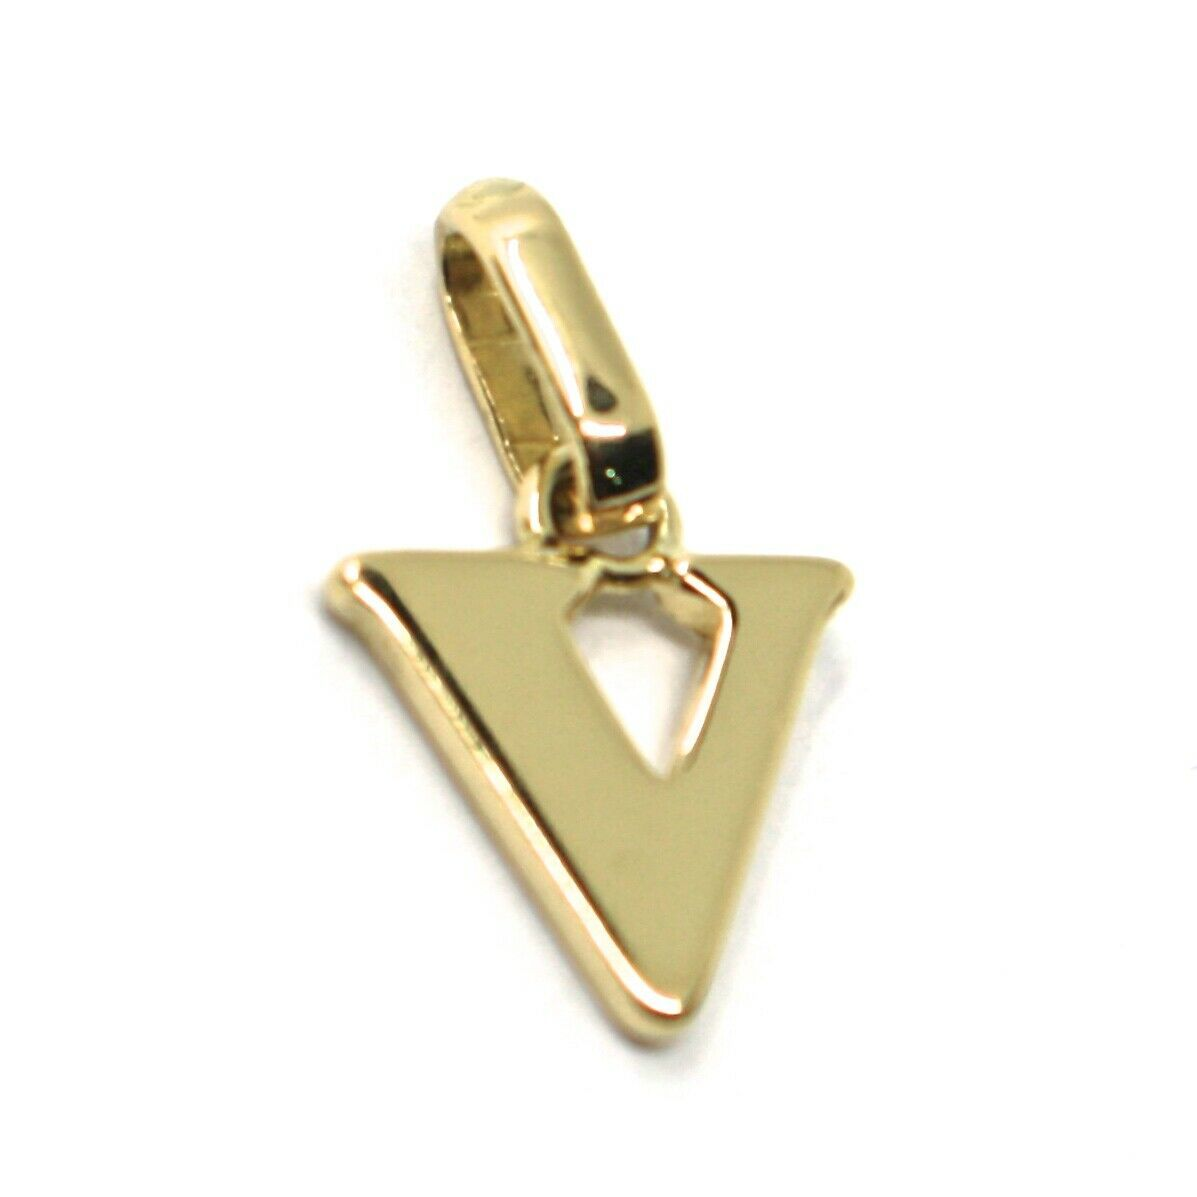 SOLID 18K YELLOW GOLD PENDANT MINI INITIAL LETTER V, 1 CM, 0.4 INCHES